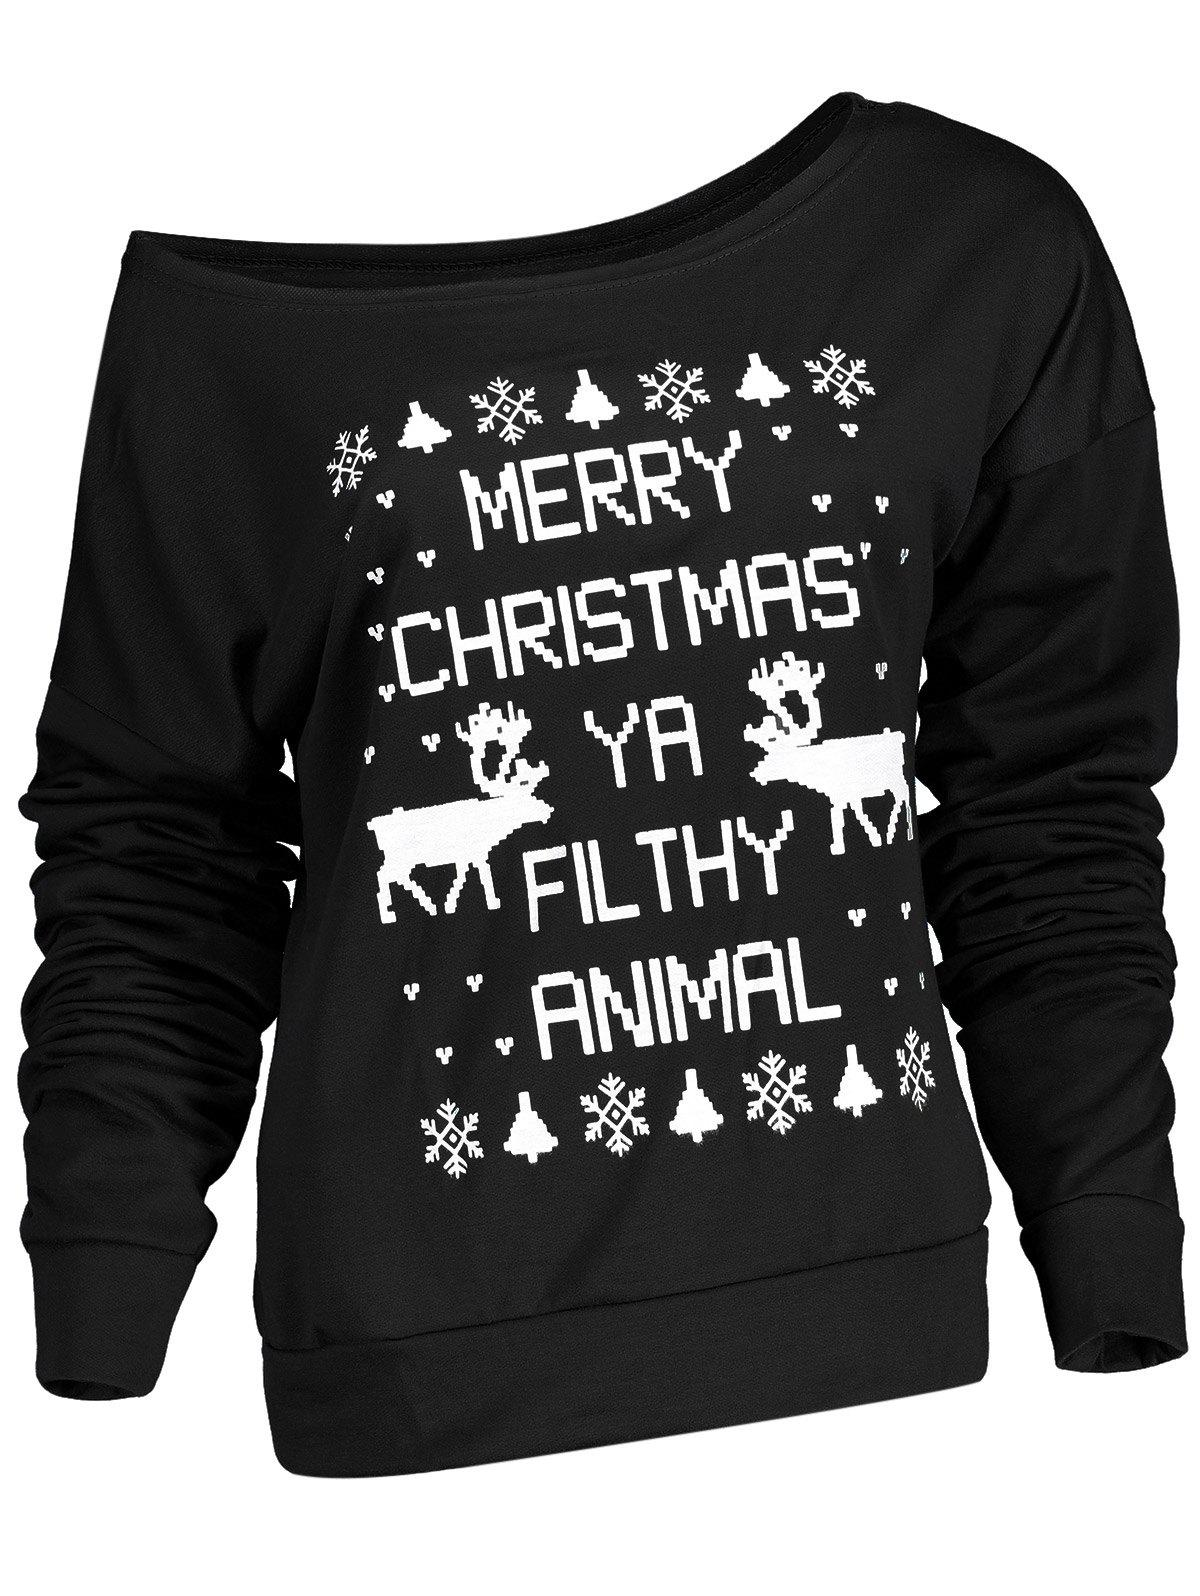 Unique Fresh Style Letter and Snowflake Print Pullover Christmas Sweatshirt For Women